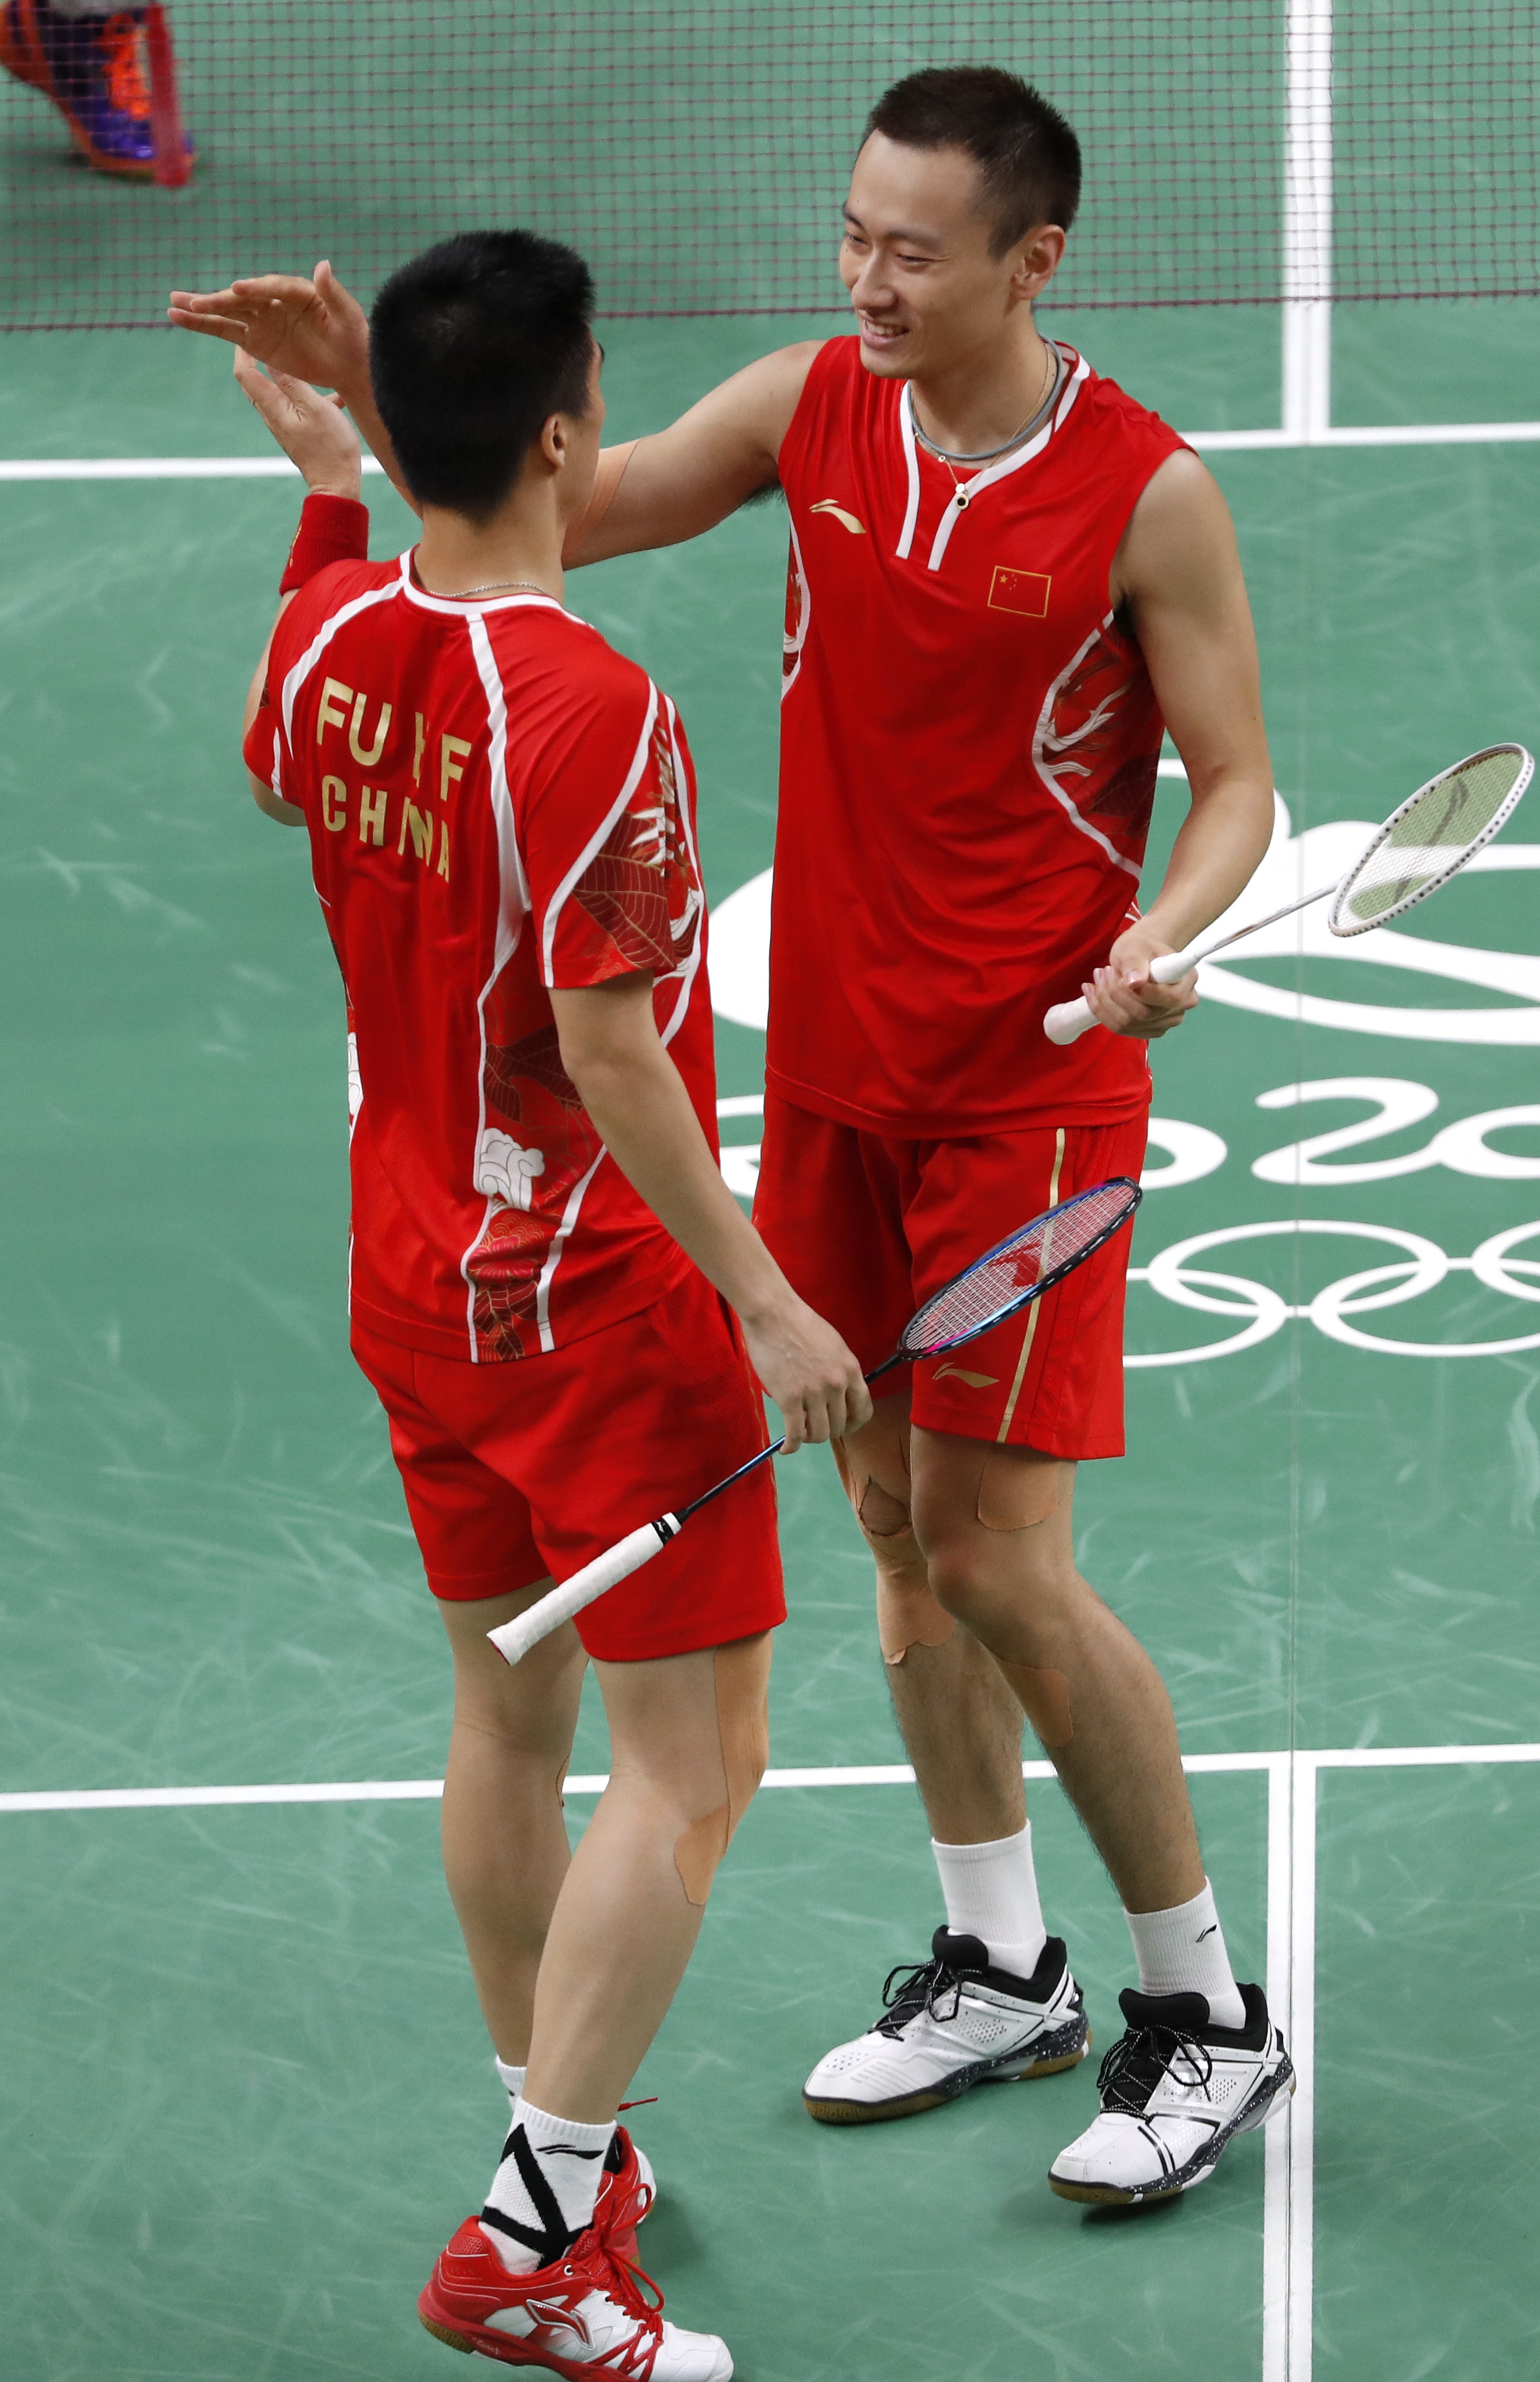 China's Fu Haifeng, left, and his teammate Zhang Nan celebrate after defeating Great Britain Marcus Ellis and Chris Langridge during the men's double semi-finals at the 2016 Summer Olympics in Rio de Janeiro, Brazil, Tuesday, Aug. 16, 2016. (AP Photo/Vinc